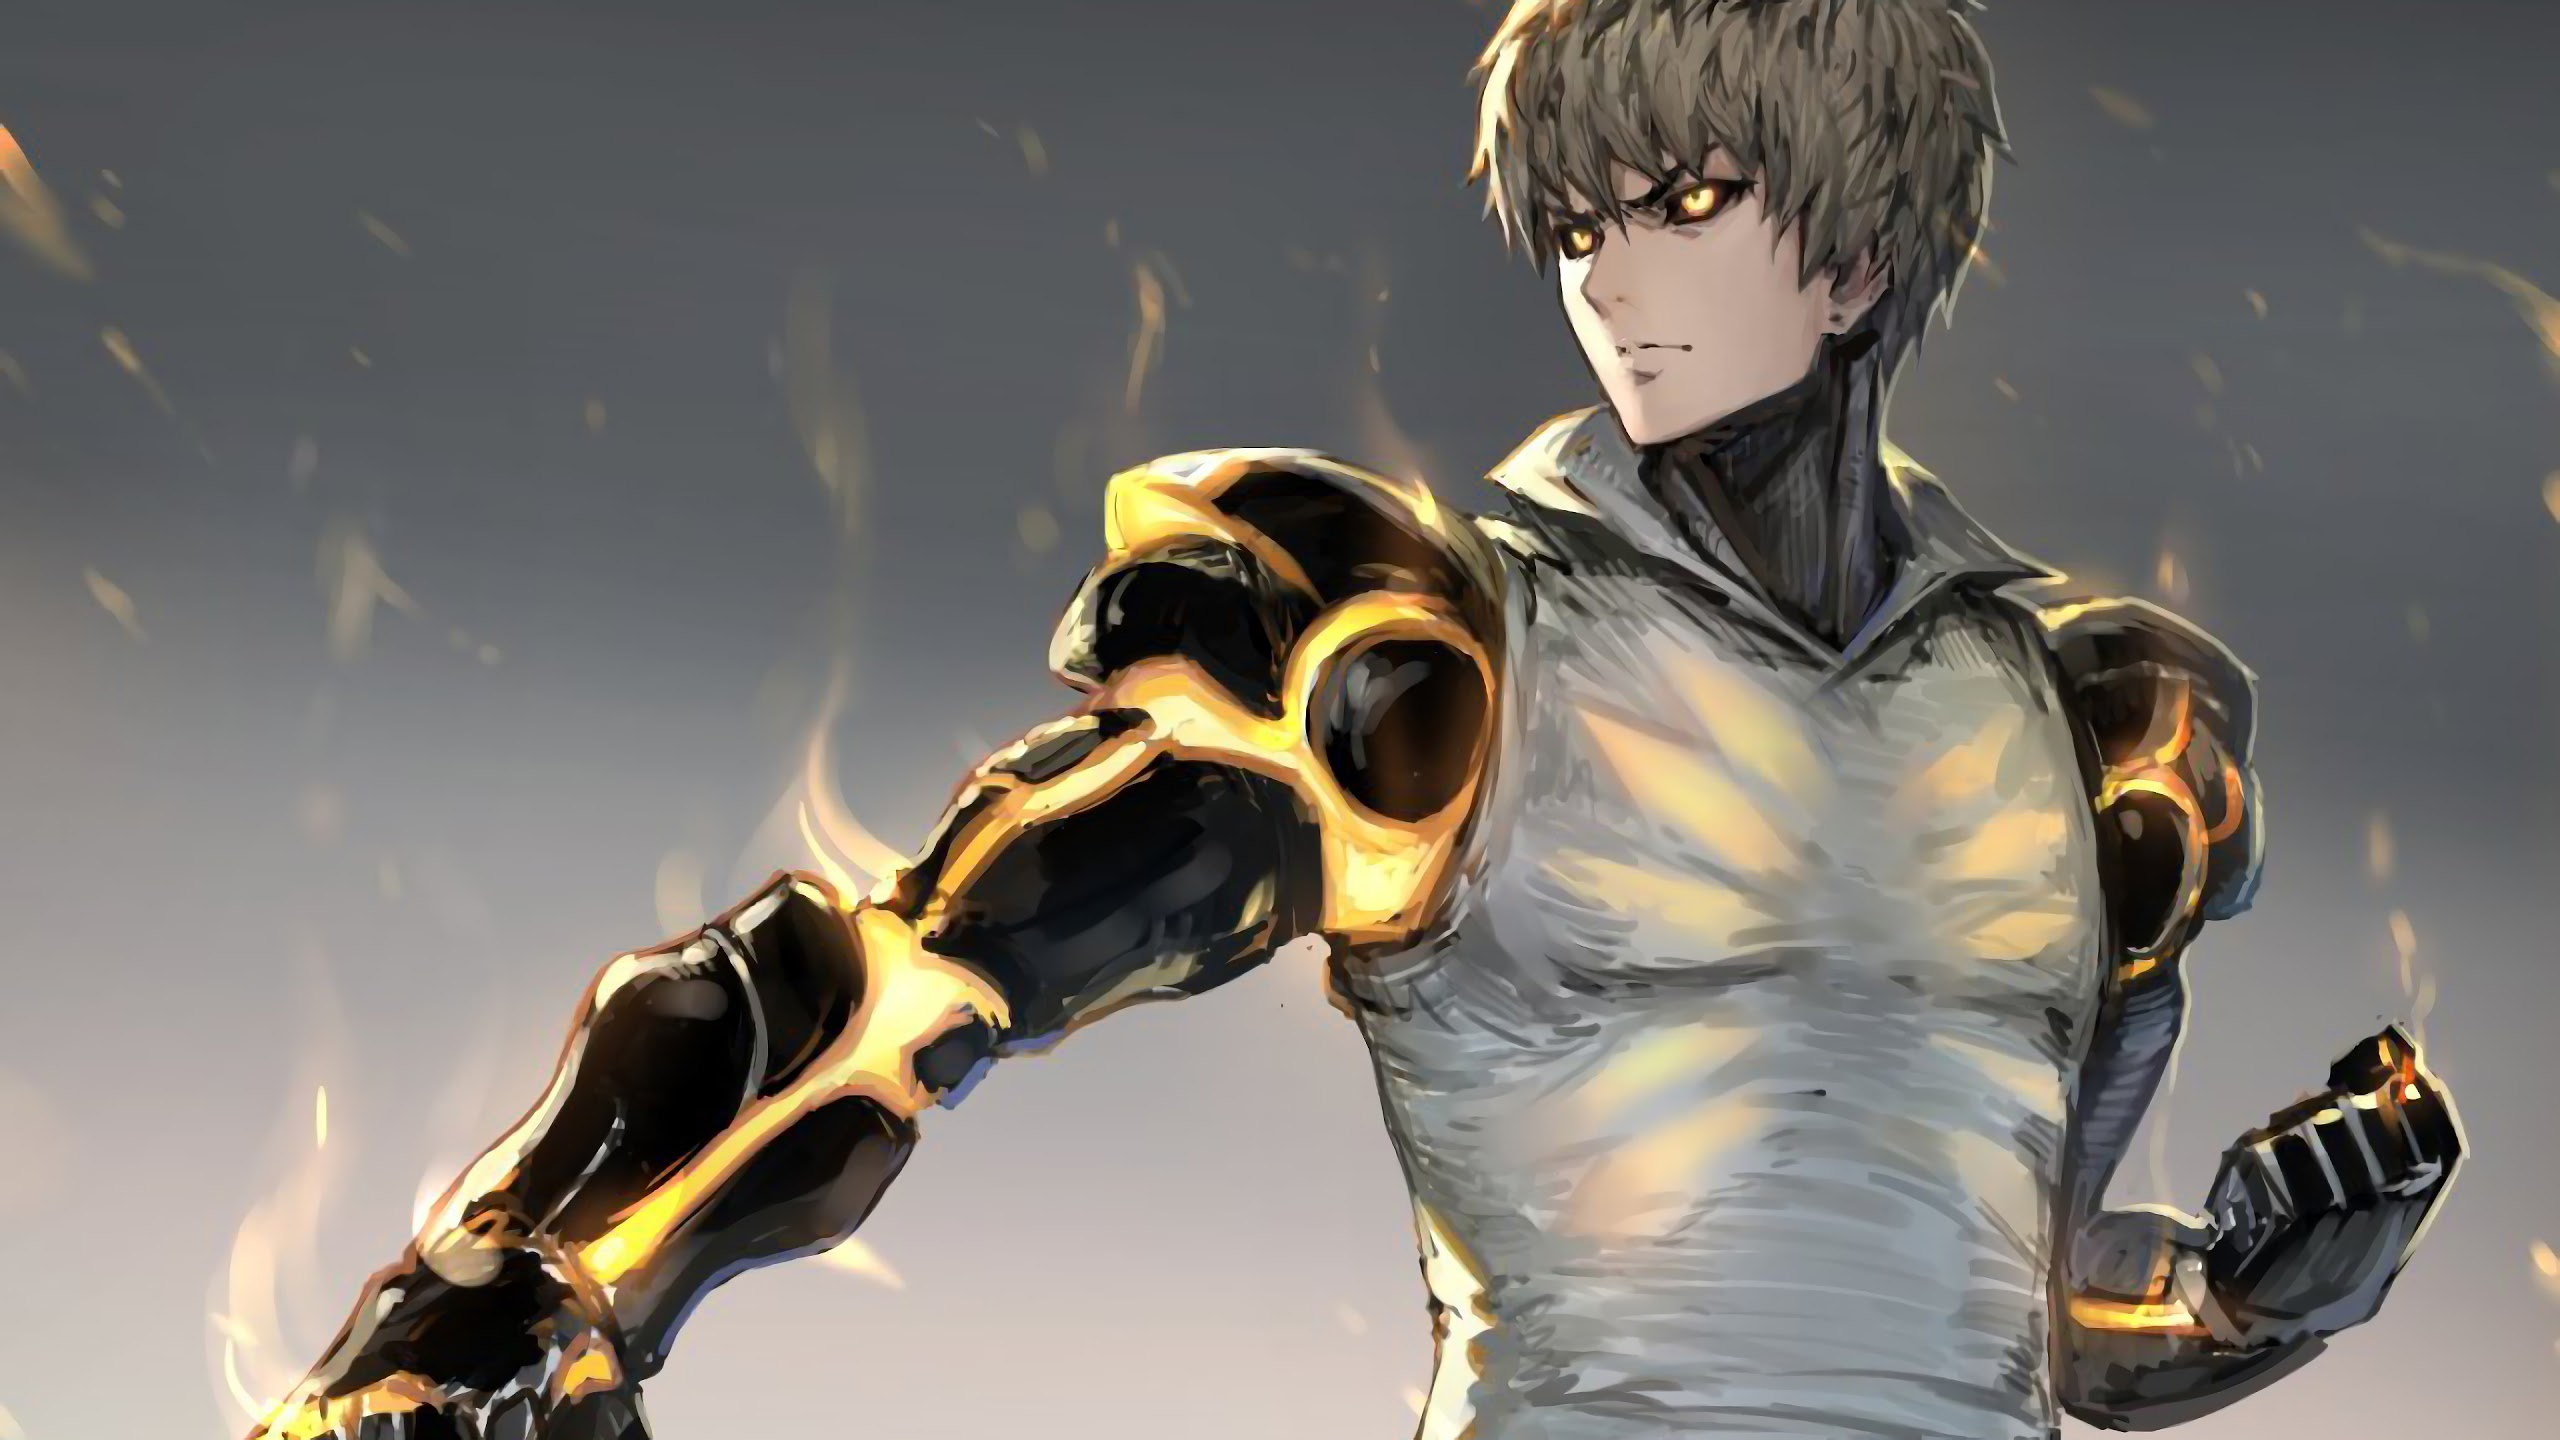 Genos One Punch Man Wallpaper Posted By Ethan Mercado